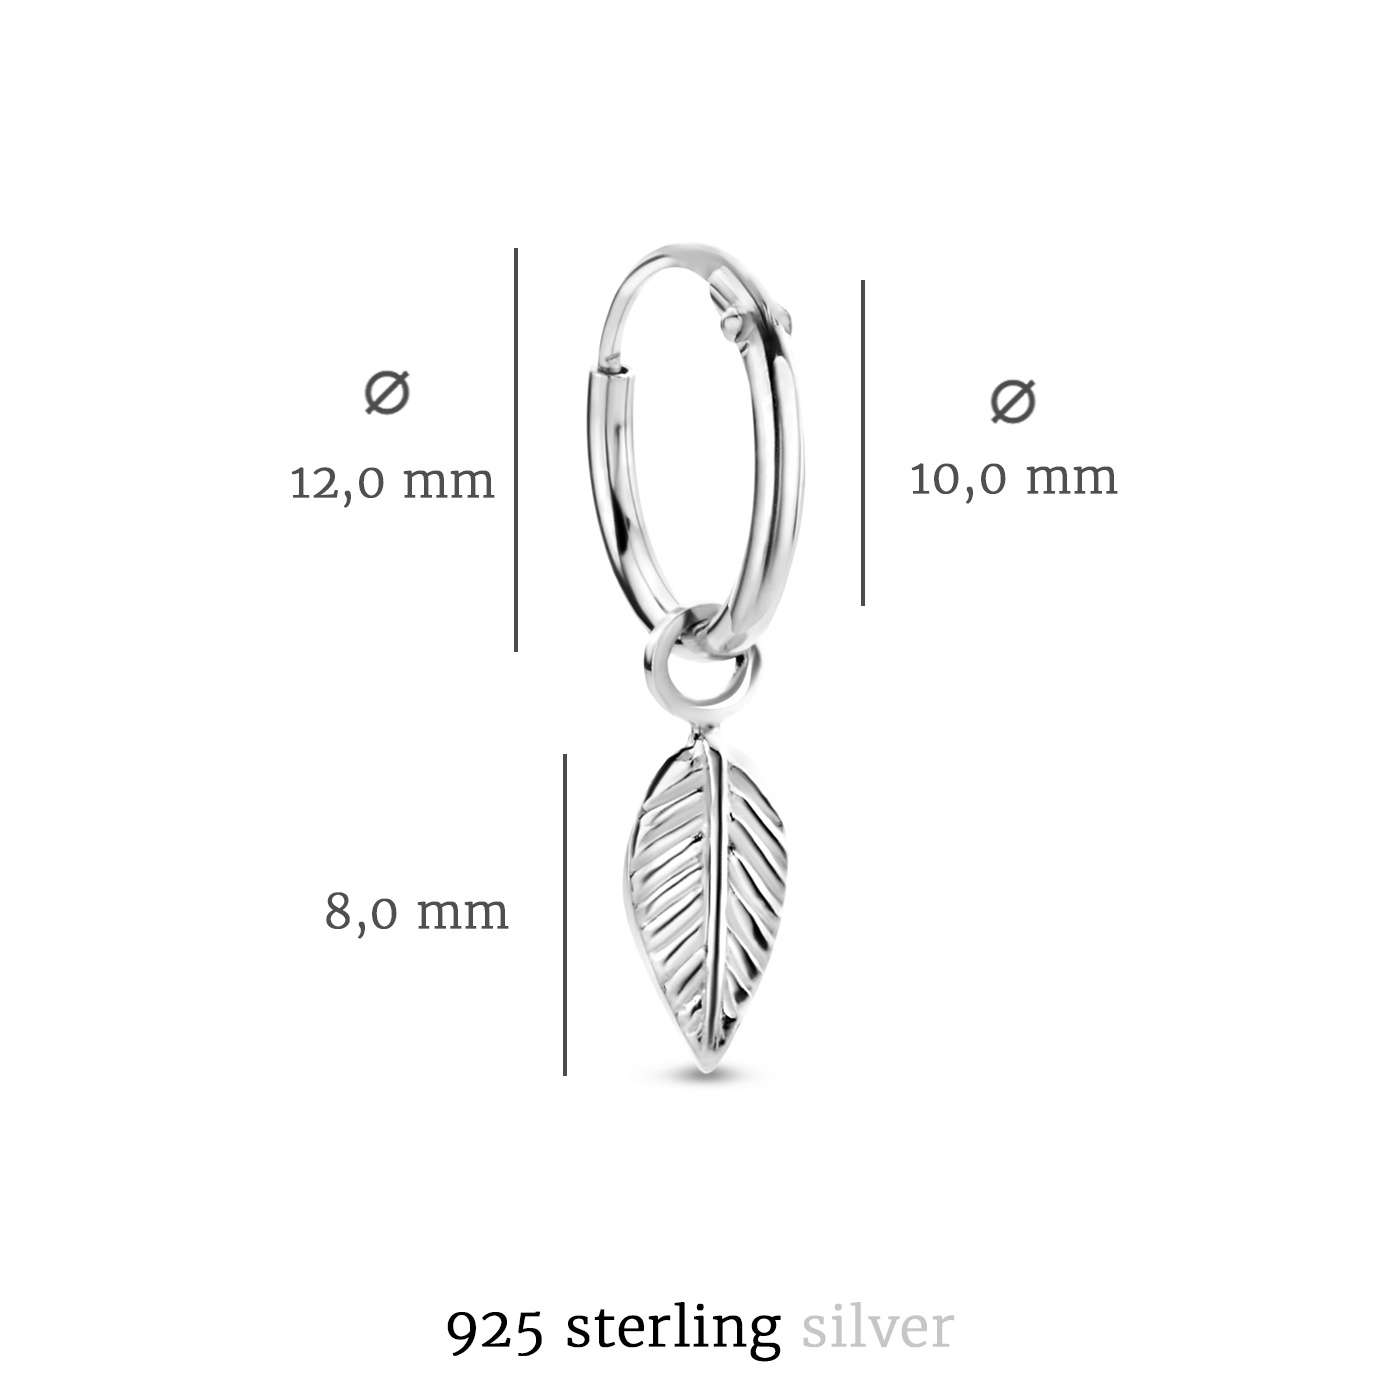 Selected Jewels Julie Lucie 925 sterling silver hoop earrings with feathers